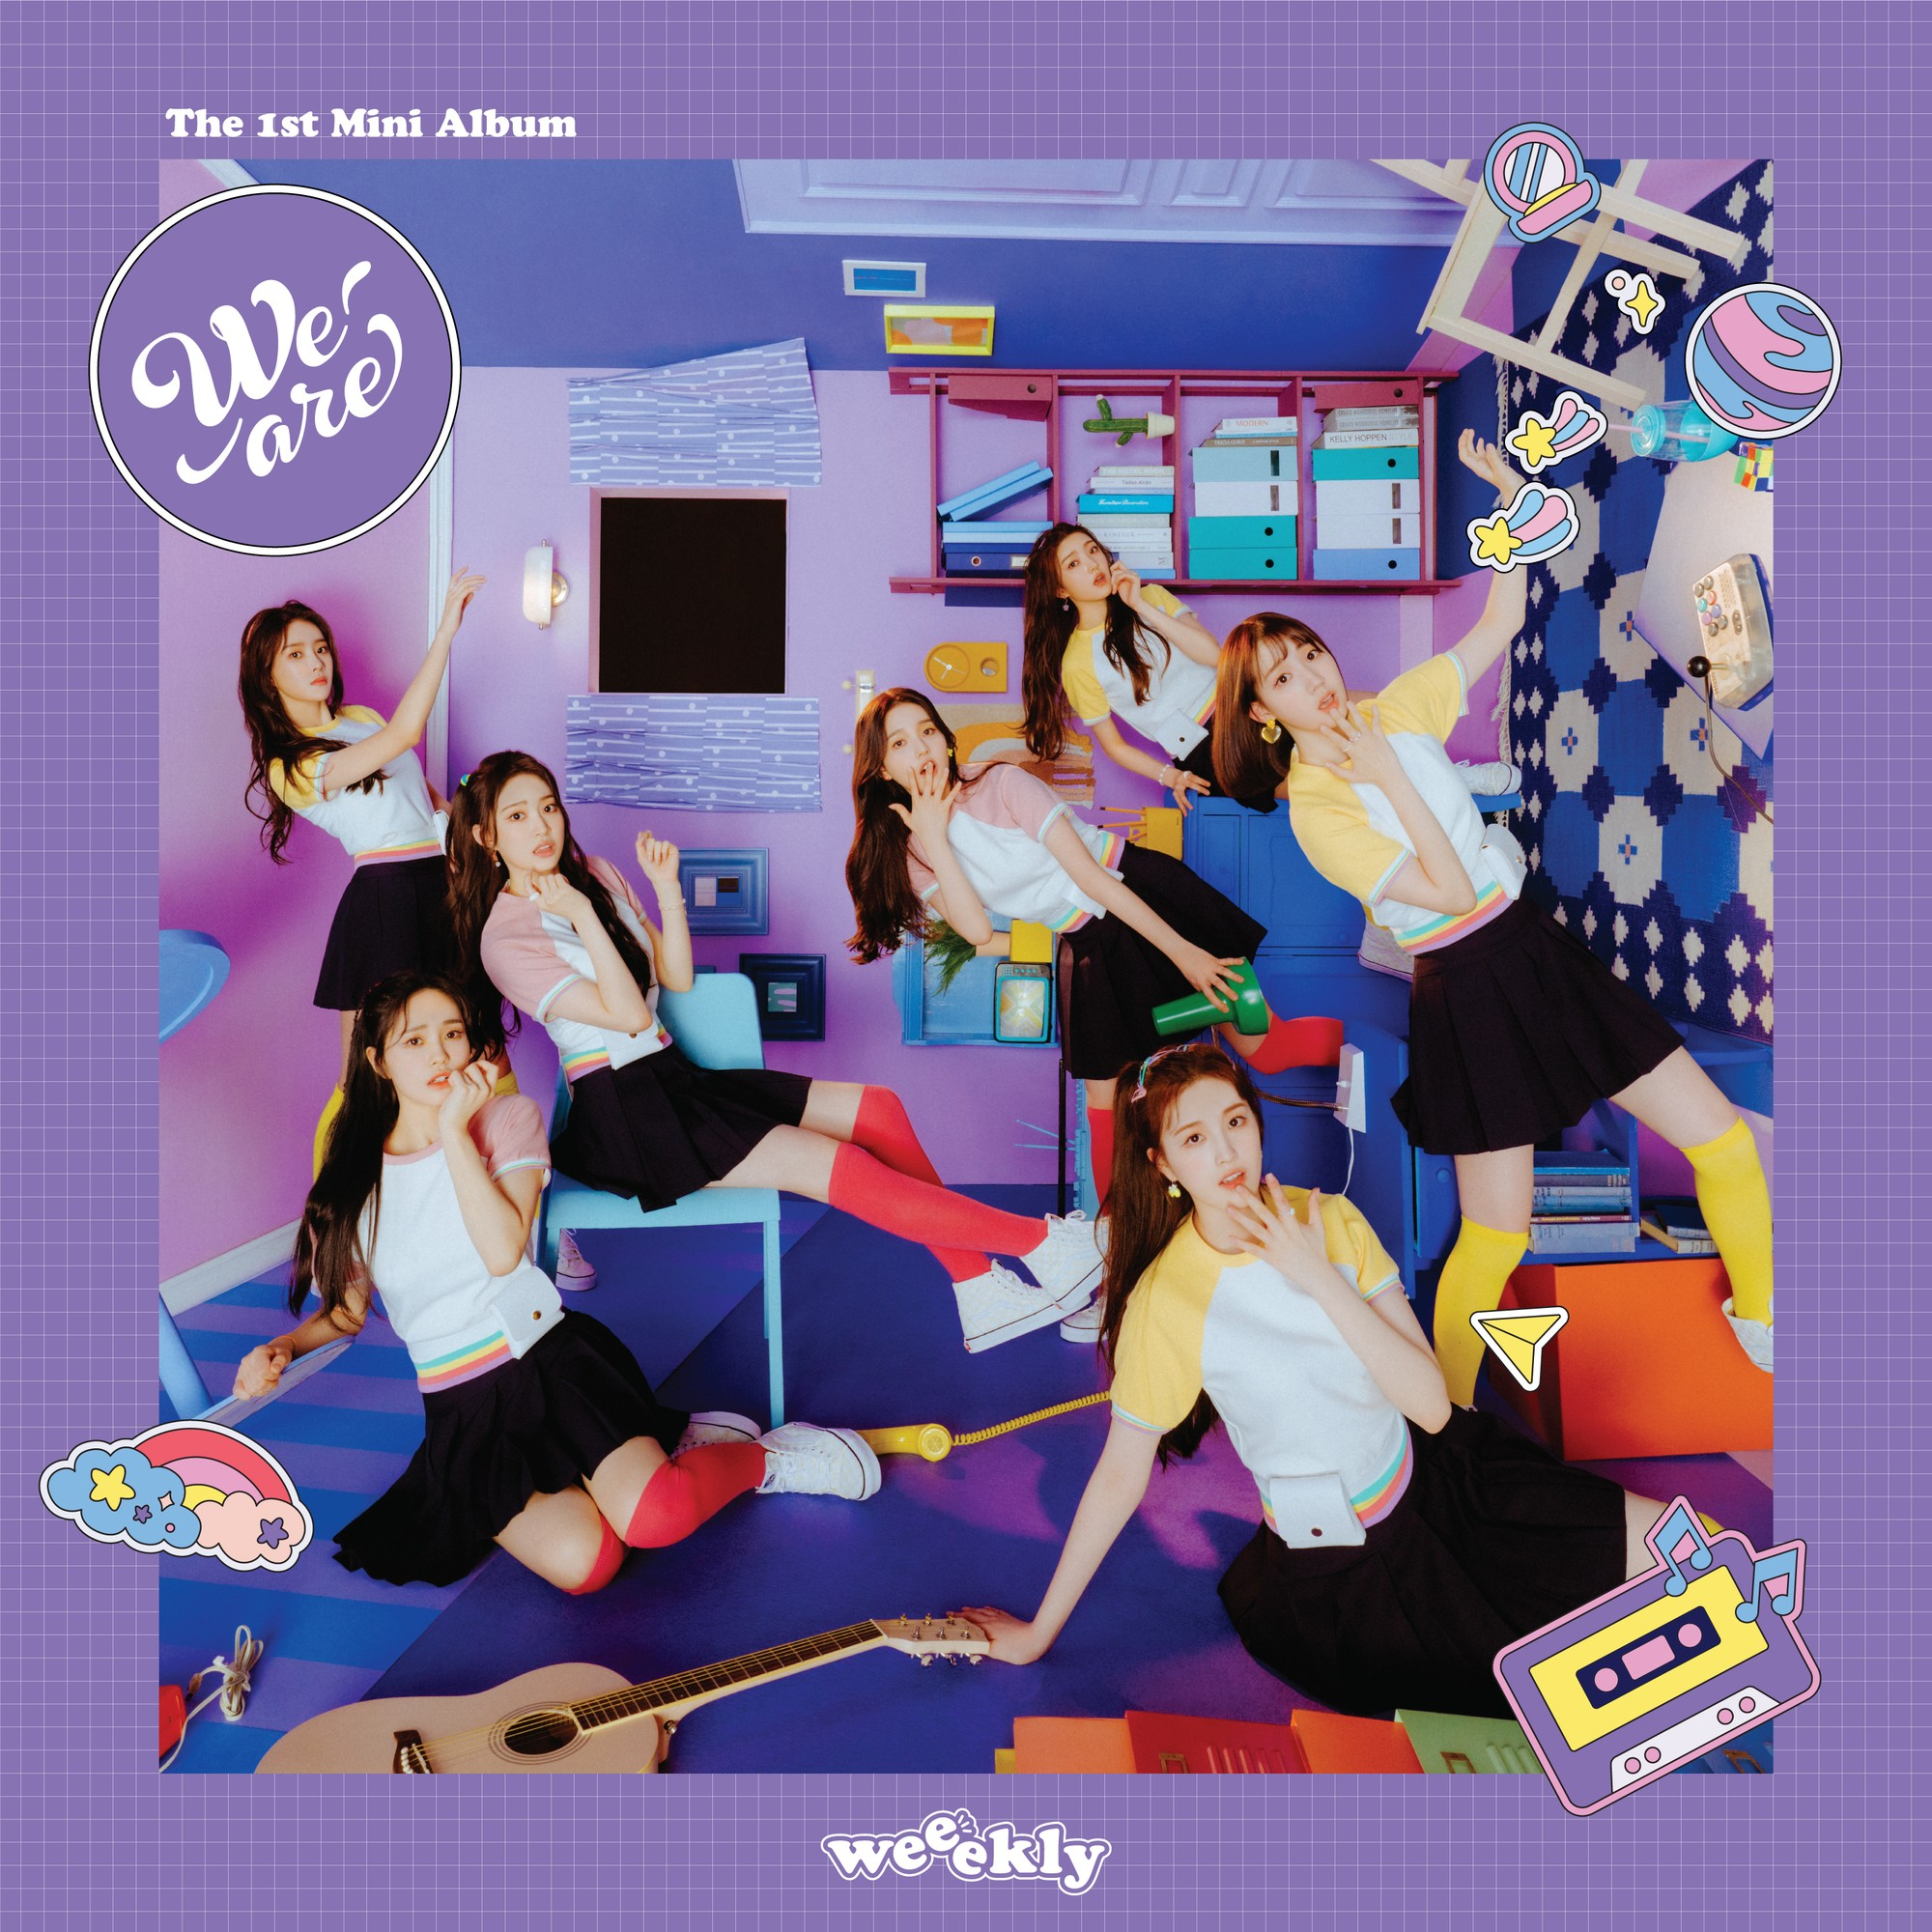 Weeekly (위클리) – We are [FLAC + MP3 320 / WEB] [2020.06.30]